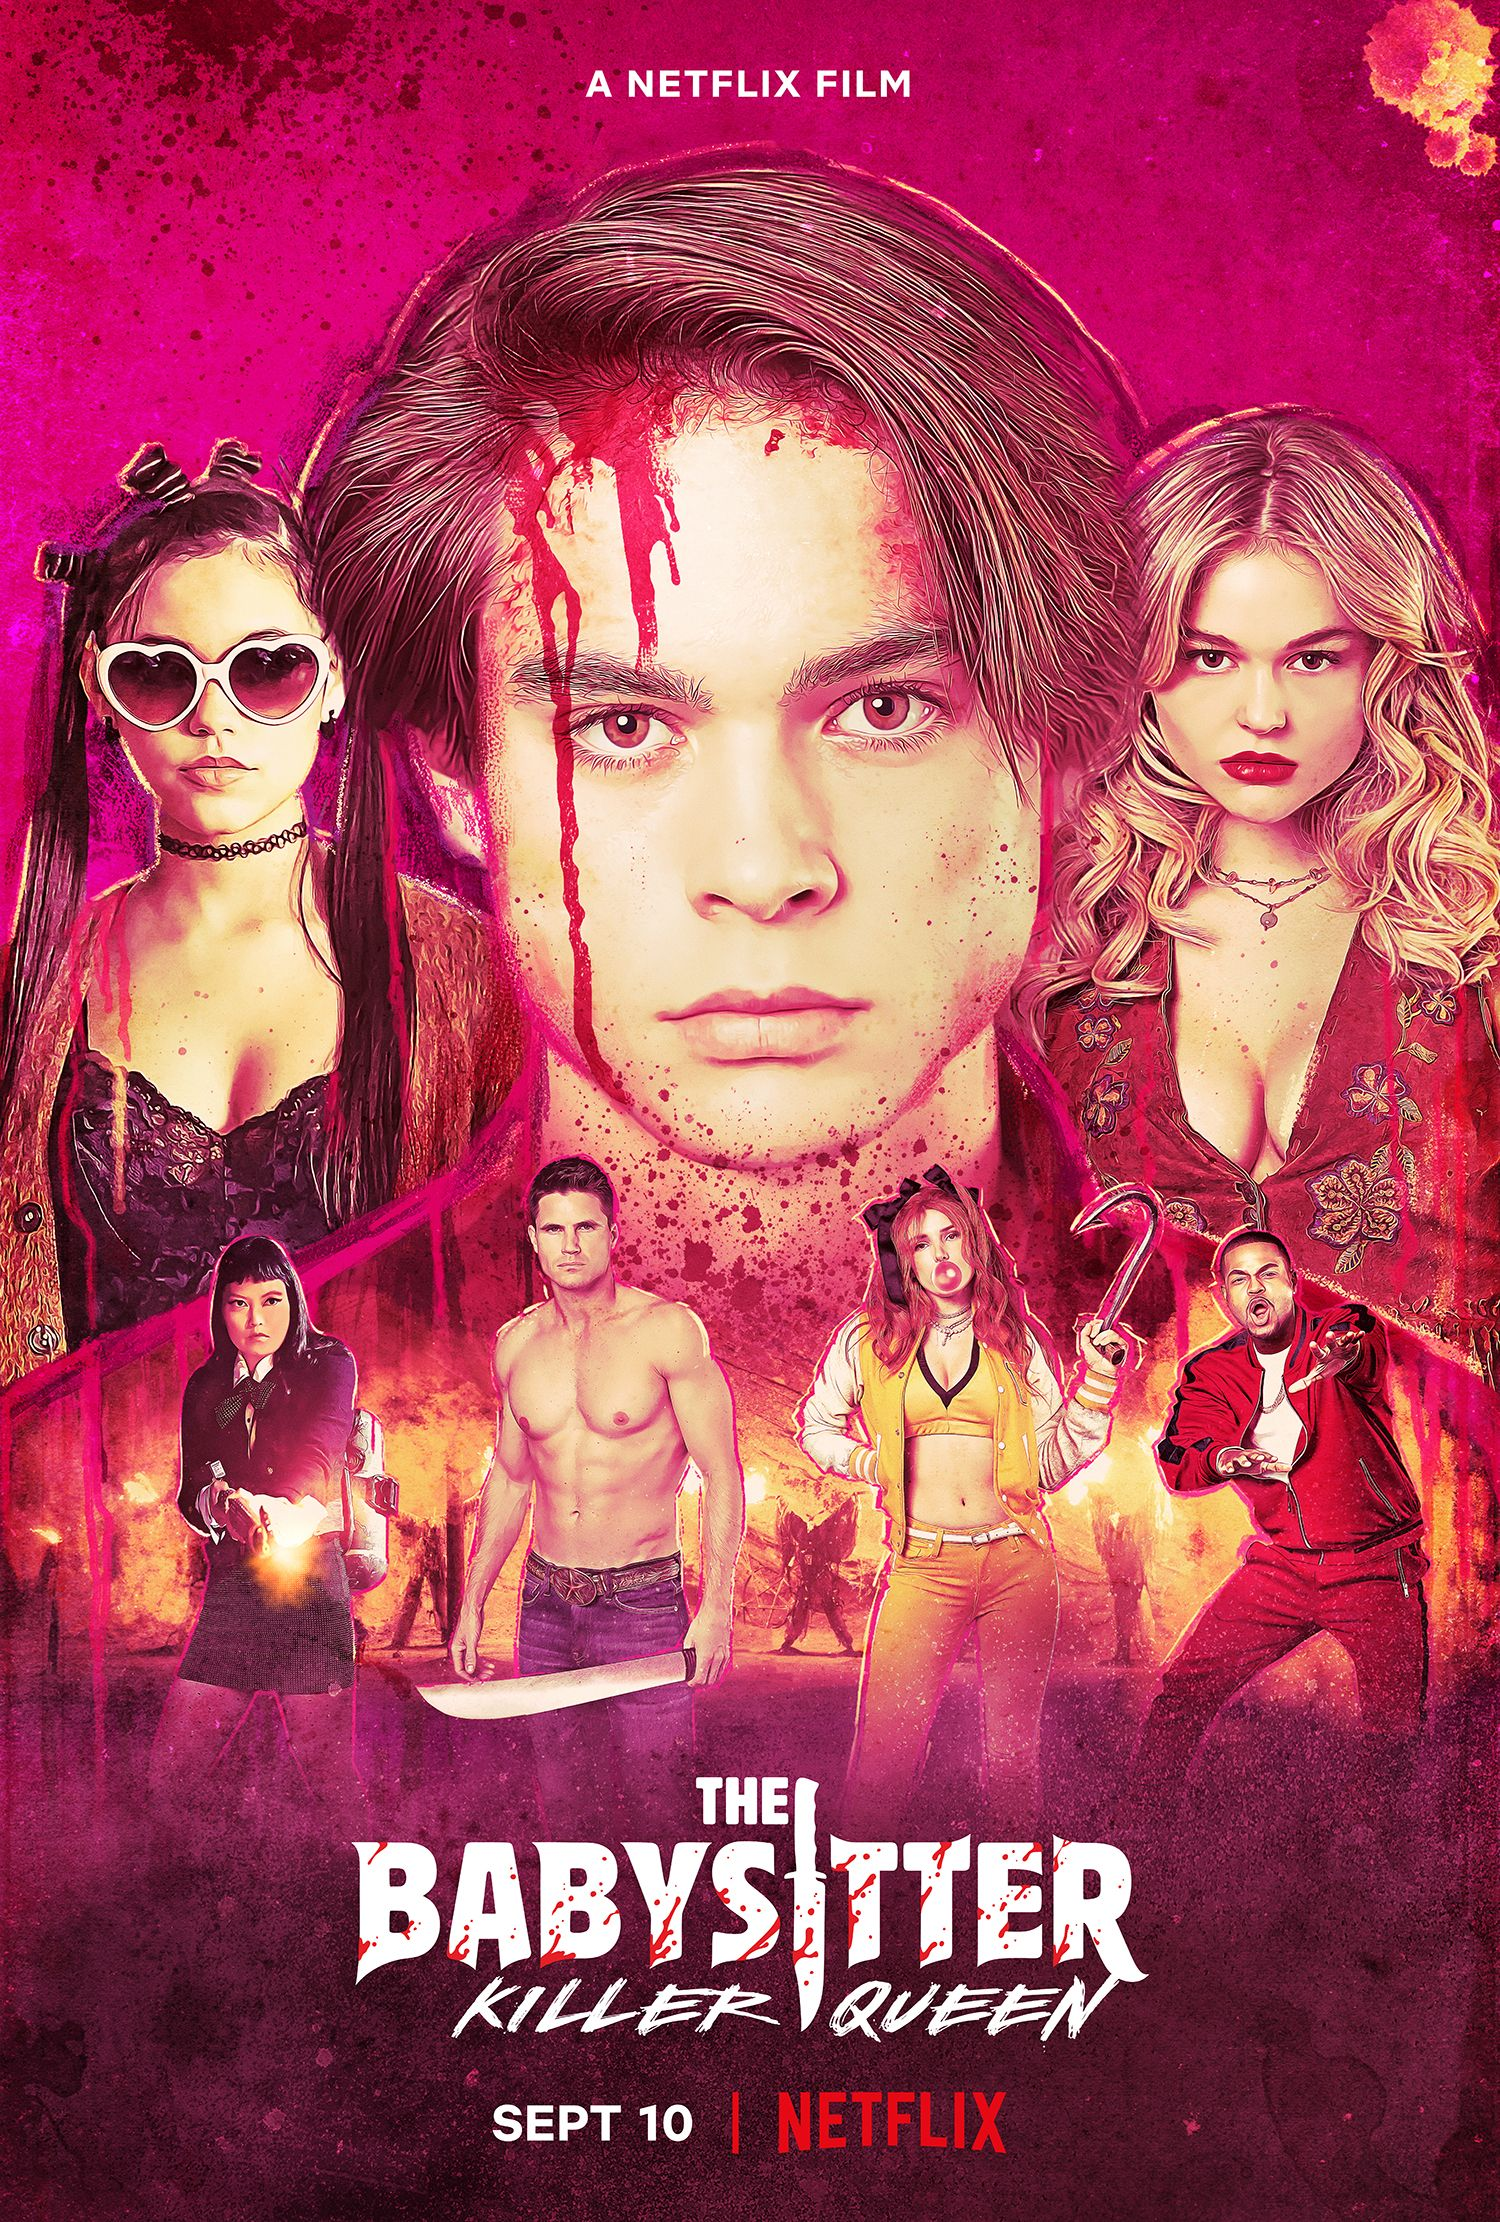 The Babysitter 2 Trailer Reveals Netflix's Bloody Horror-Comedy Sequel |  Collider